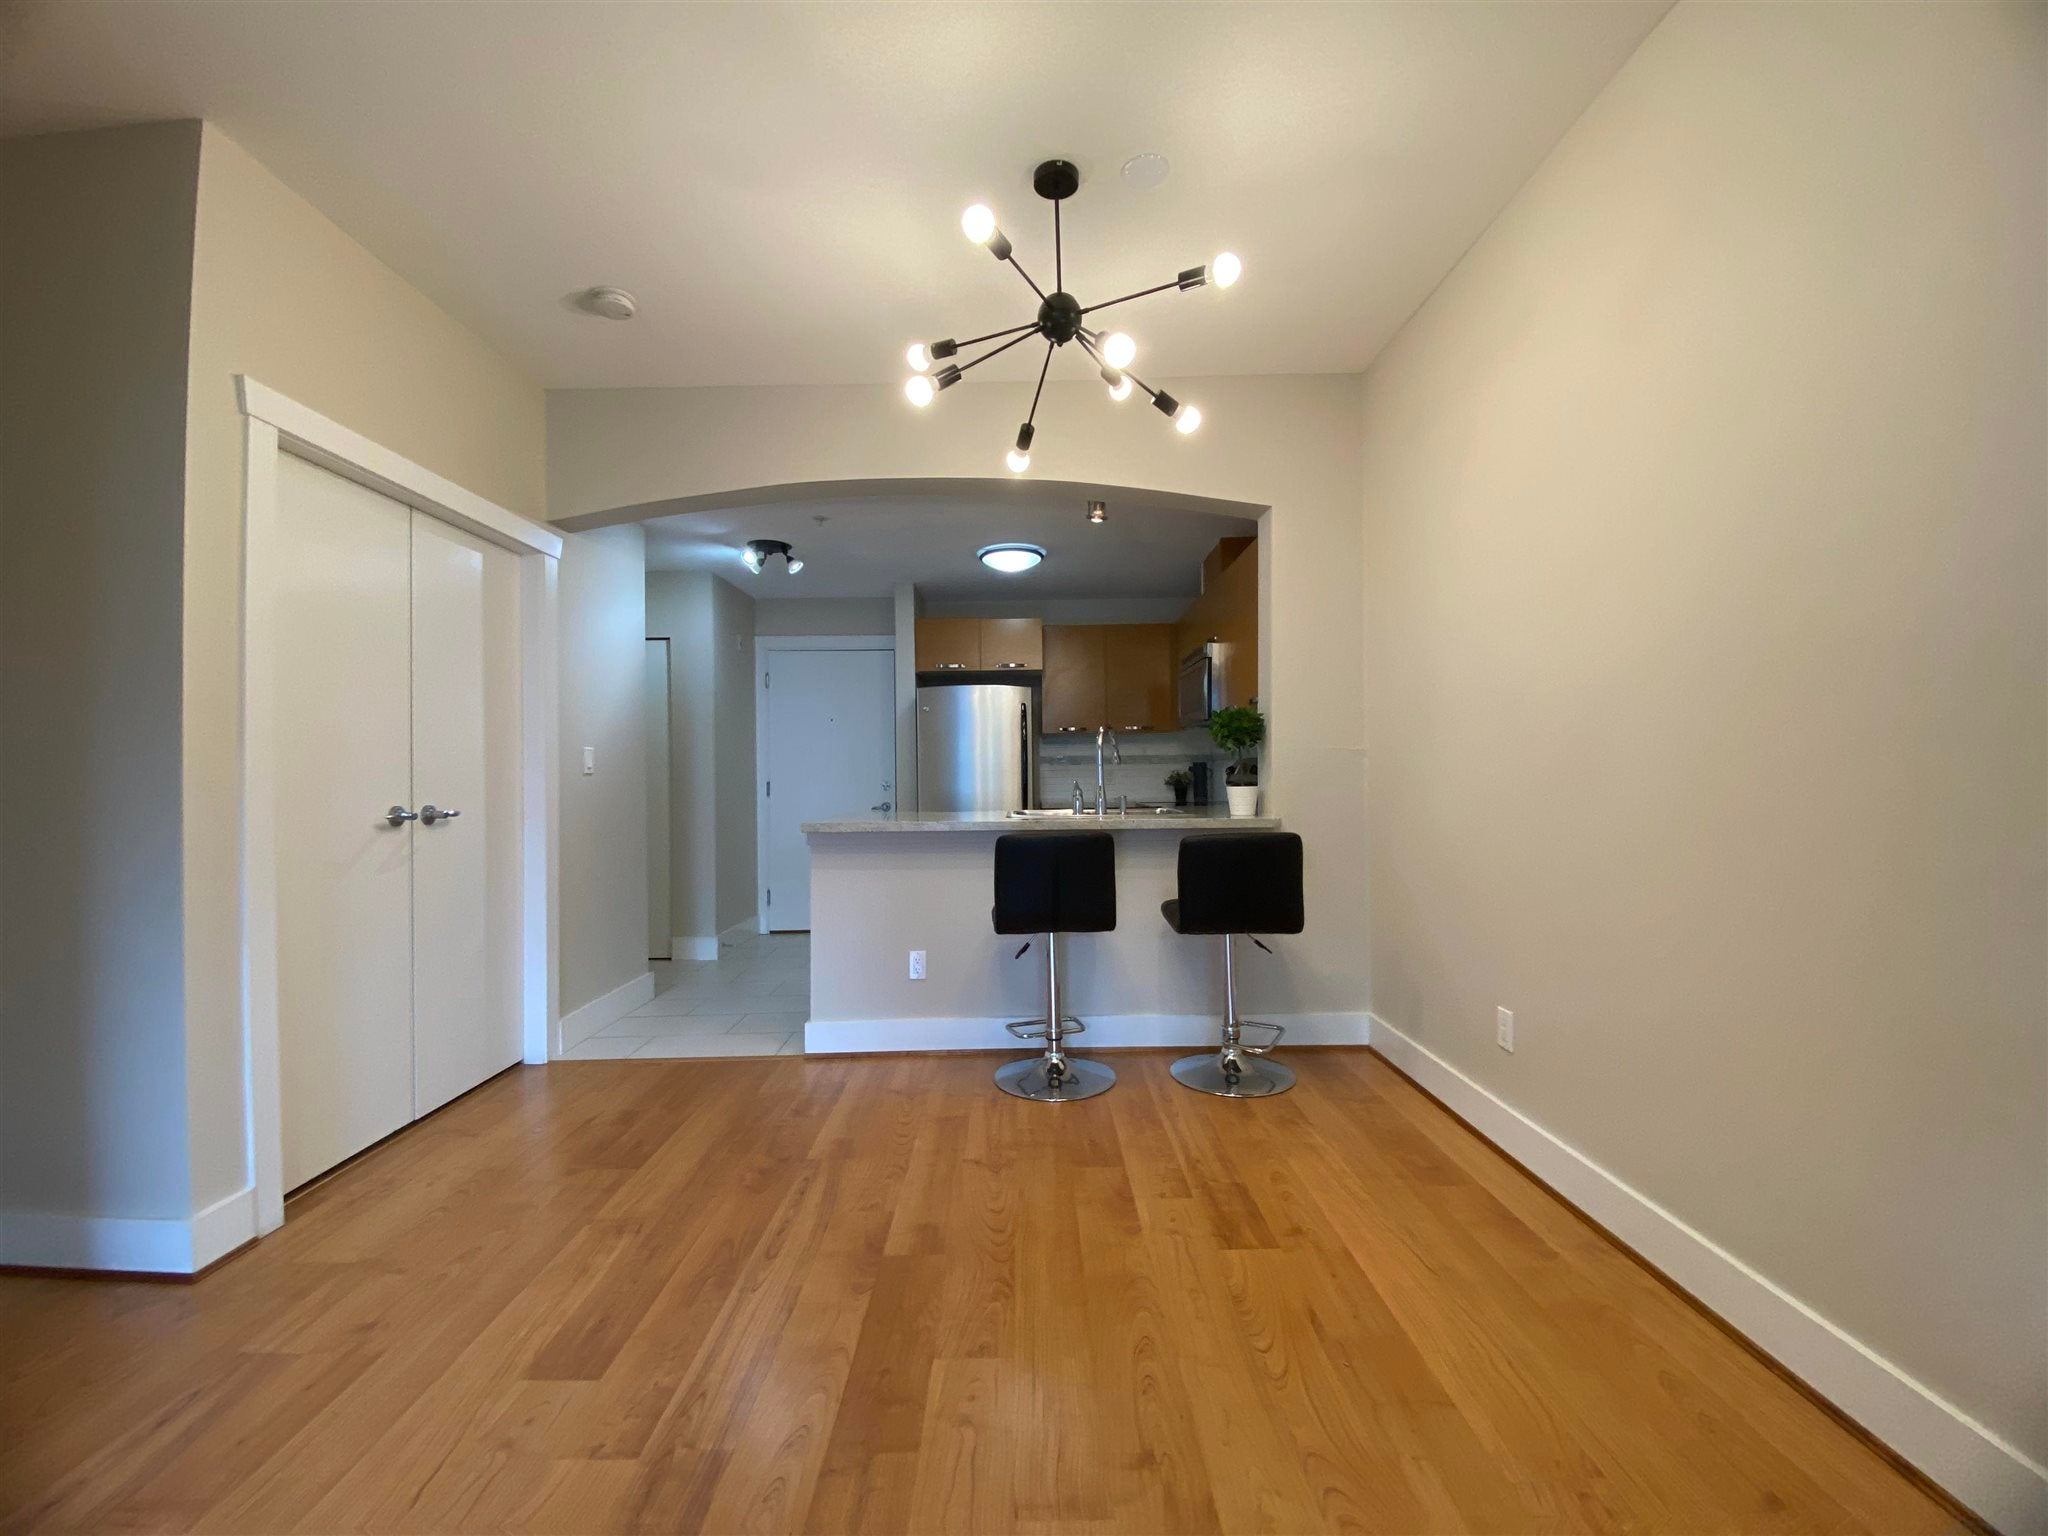 304 7428 BYRNEPARK WALK - South Slope Apartment/Condo for sale, 1 Bedroom (R2604124) - #4